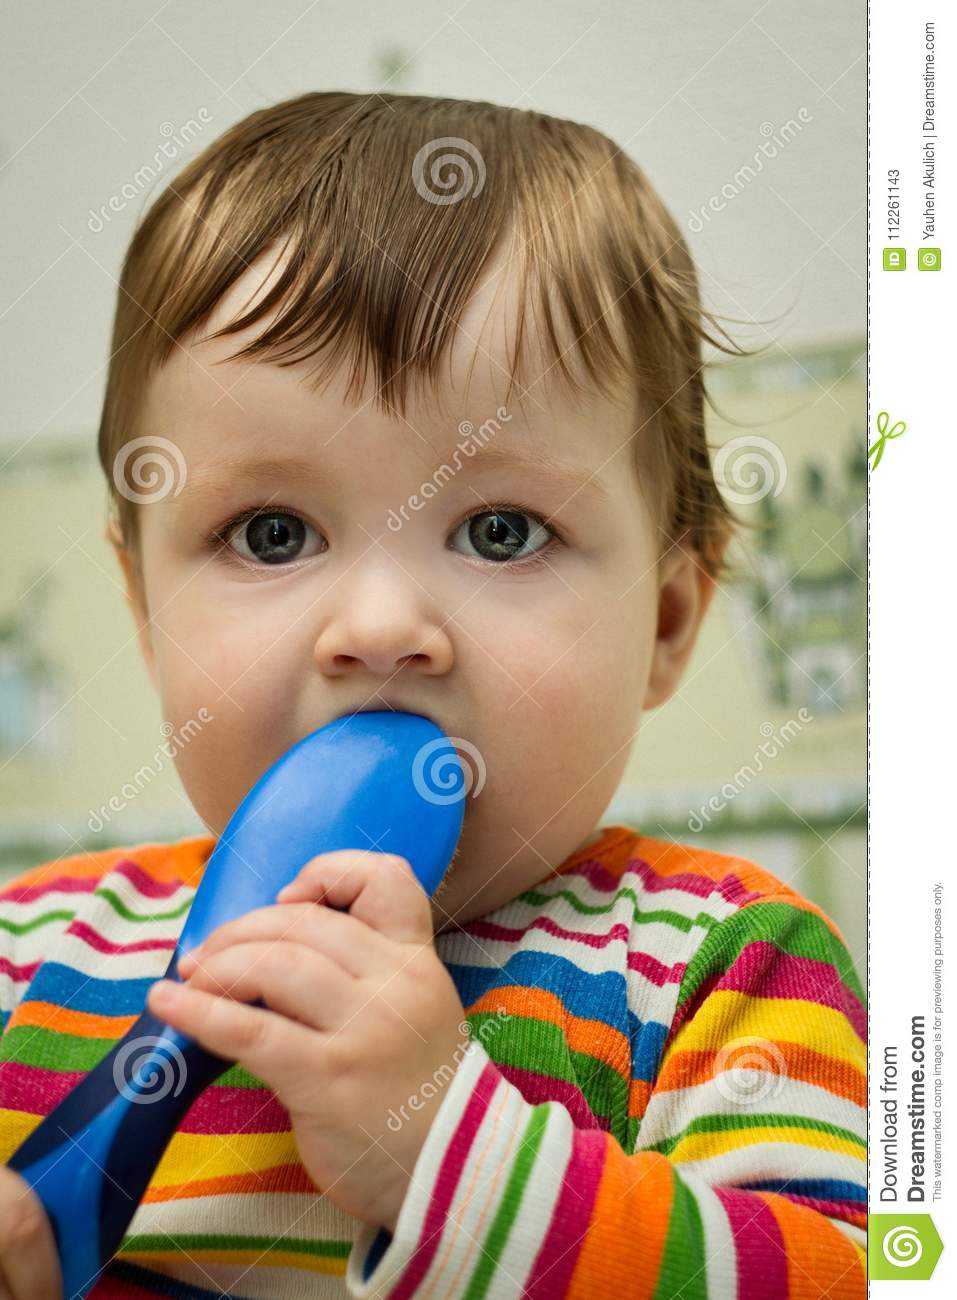 Boy after bath with comb stock image. Image of little - 112261143